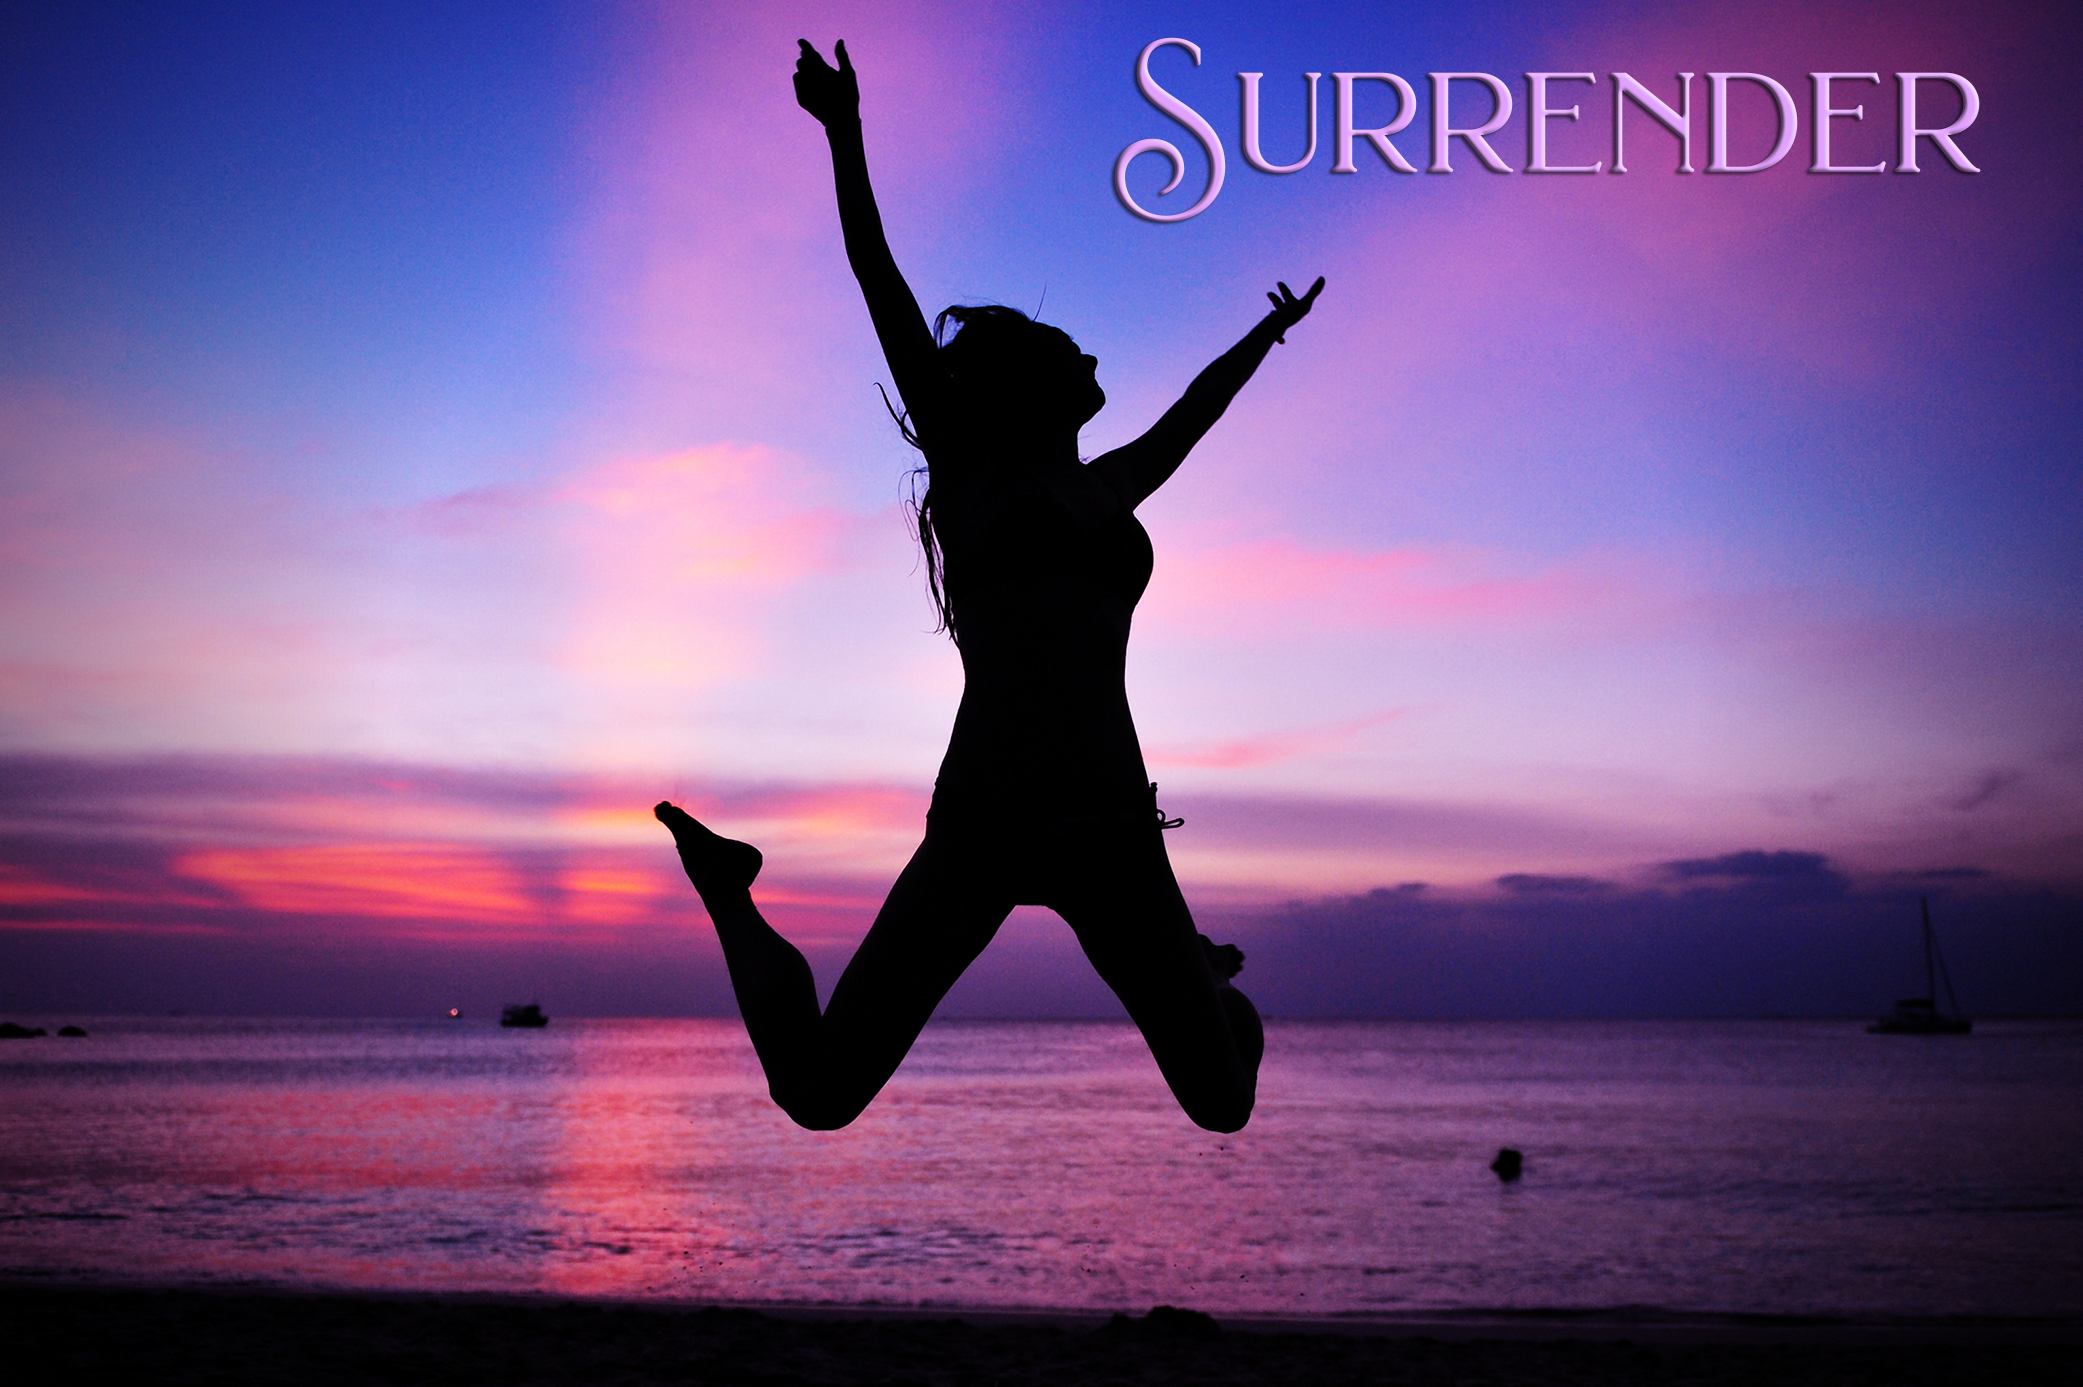 Surrender | Life Coach - Sherrie Wirth in Bend, Oregon | Psychic, Intuitive, Life Coach & Spiritual Counselor